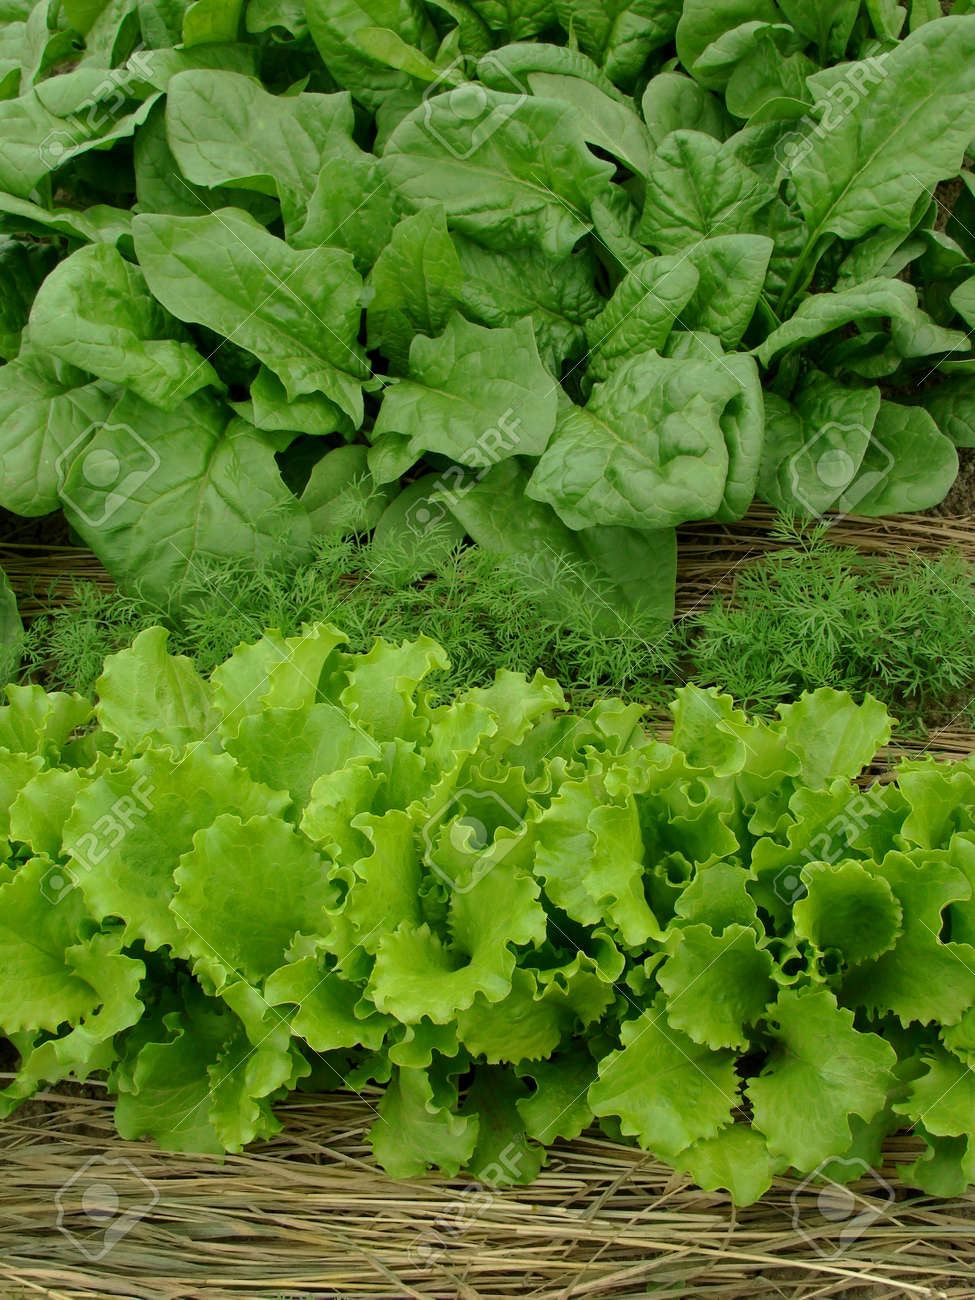 some types of greens growing together on mixed vegetable bed Stock Photo - 9560890